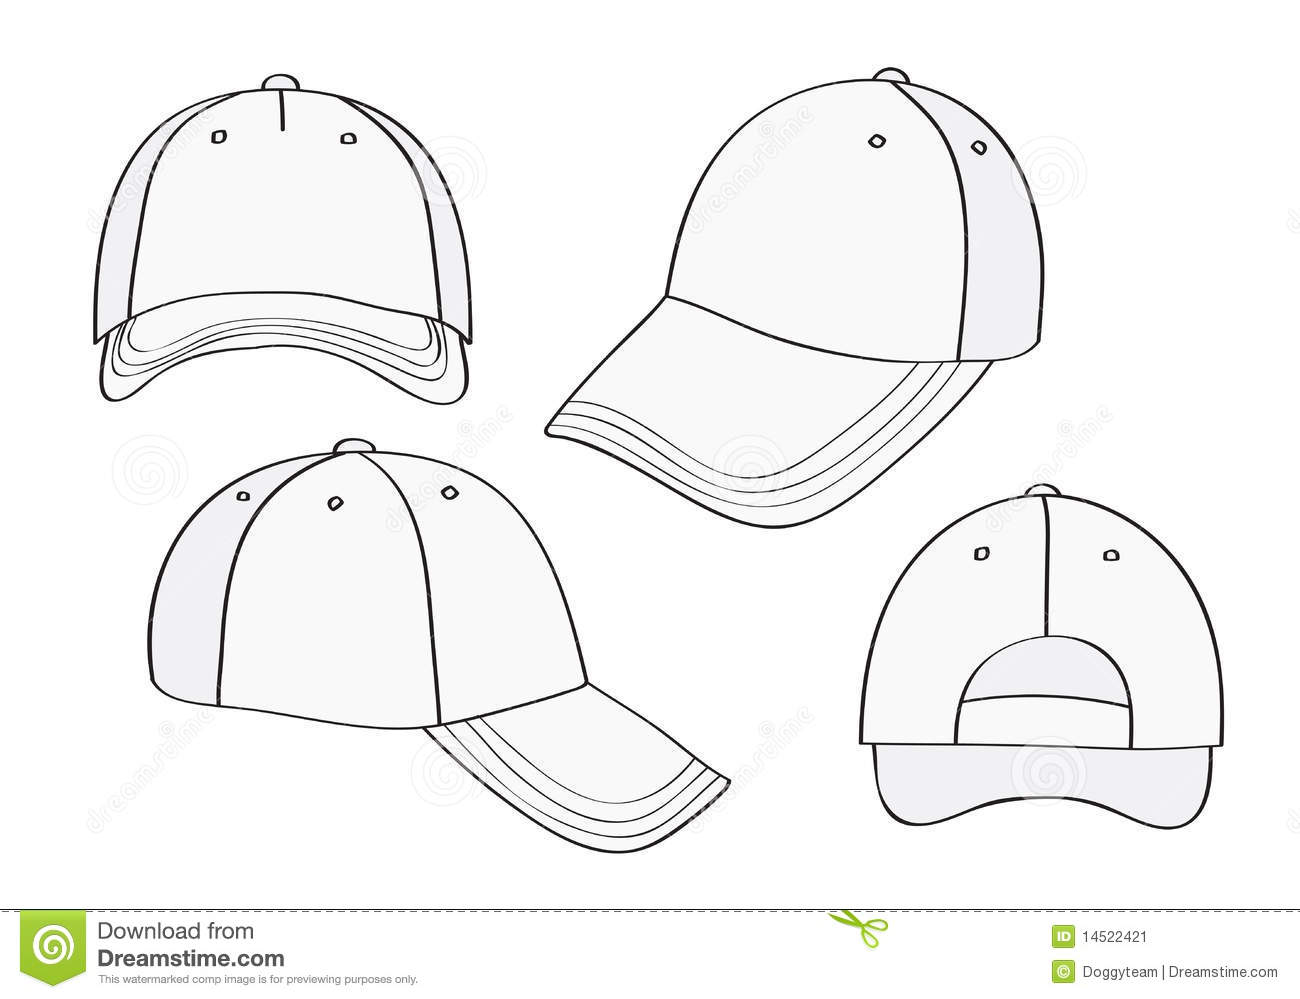 27 Images of Ball Cap Design Template | leseriail.com